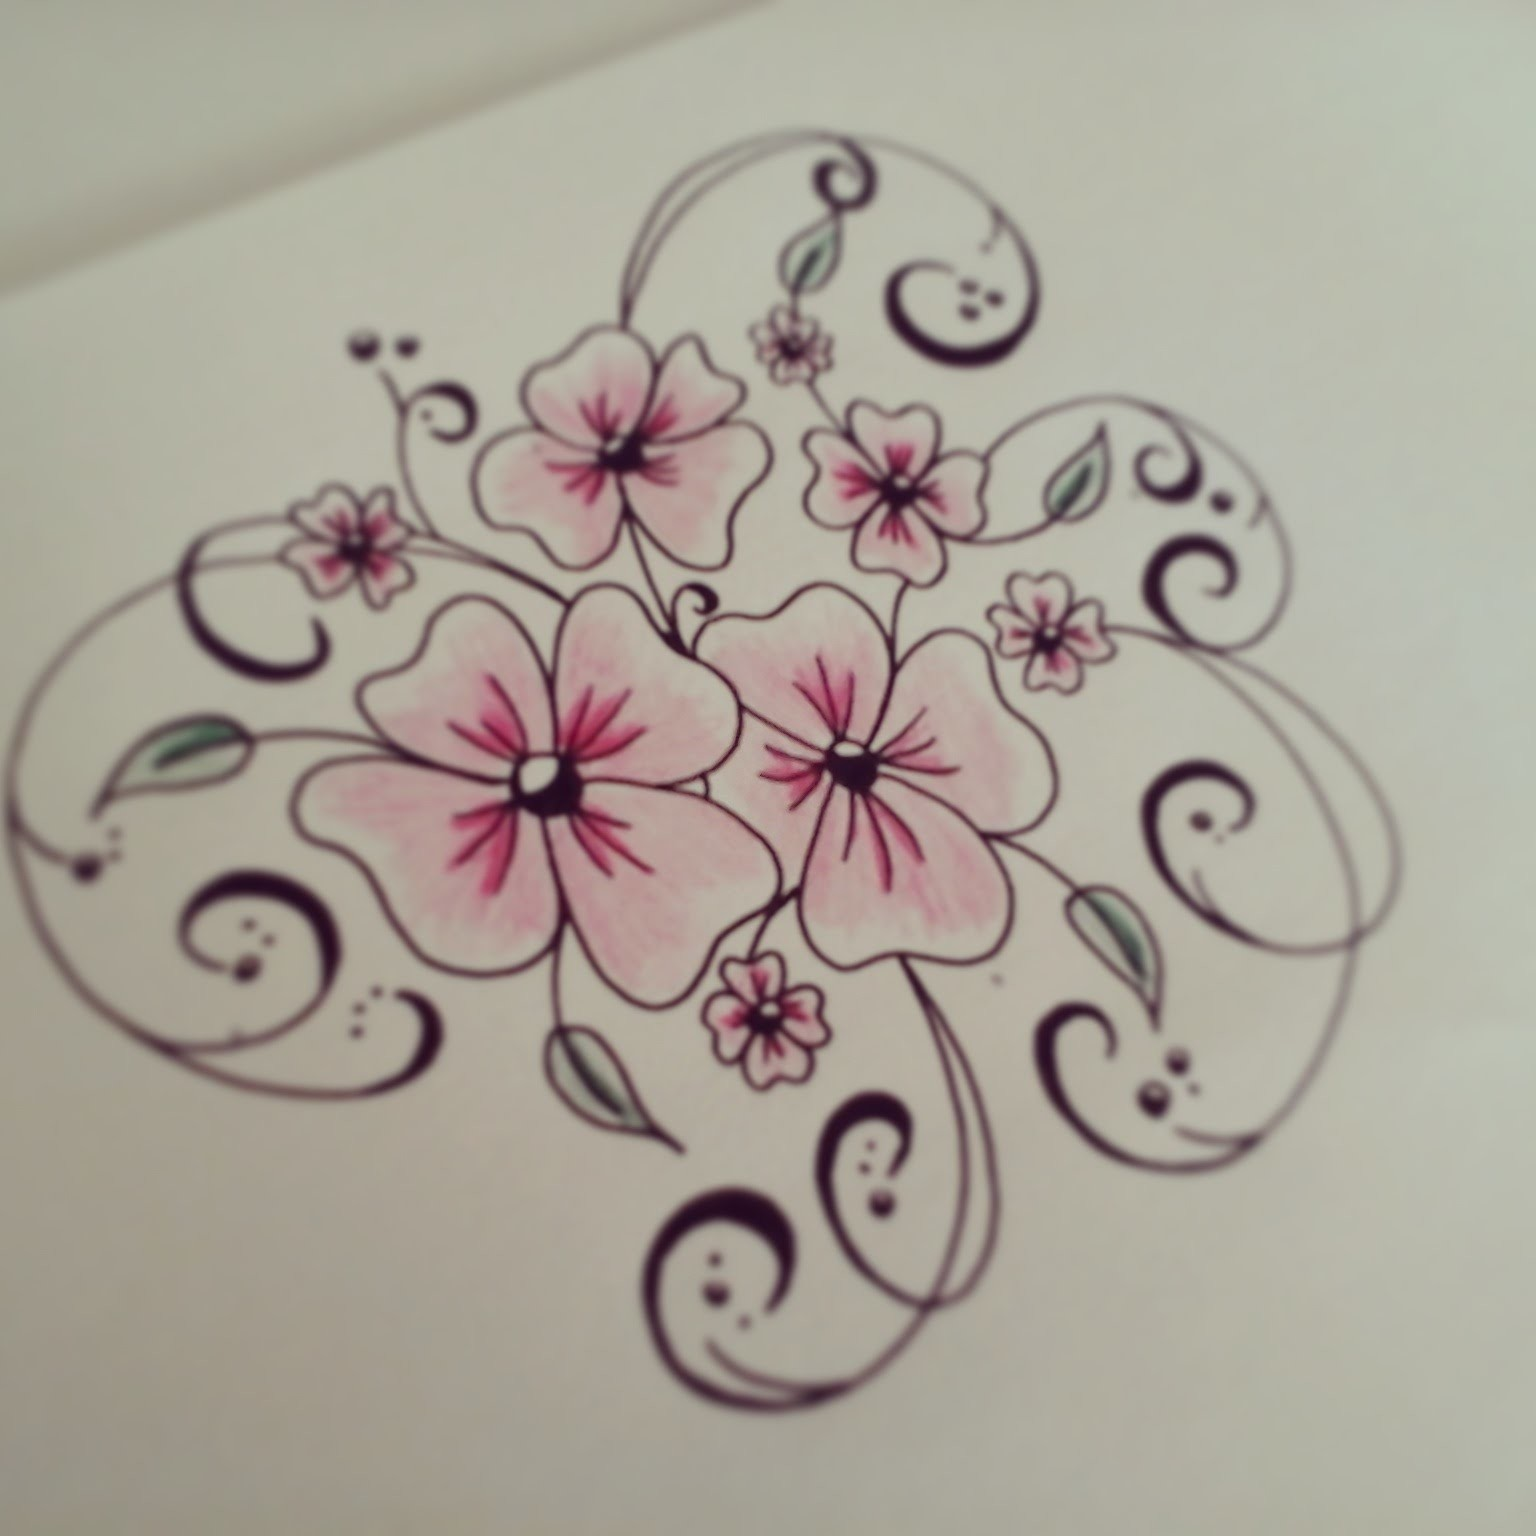 How to draw flowers for beginners - easy version tattoo flowers